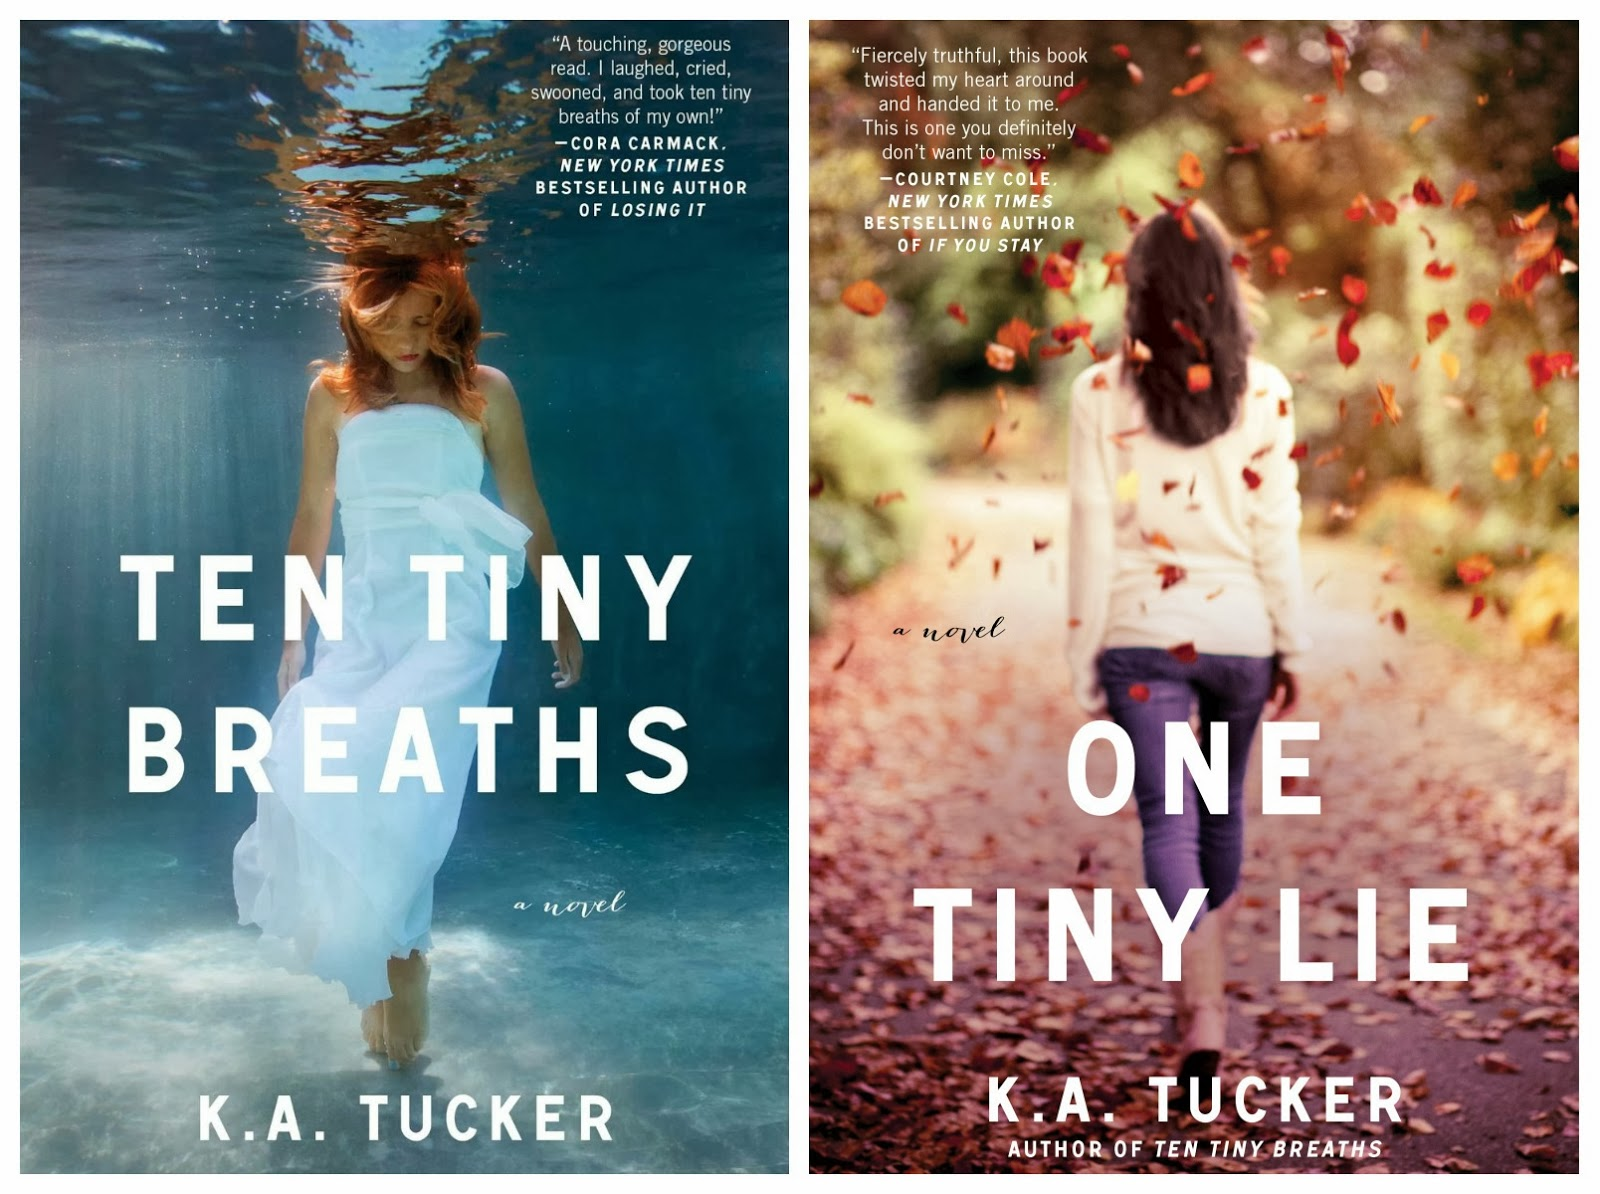 Ten Tiny Breaths and One Tiny Lie by K.A. Tucker book reviews